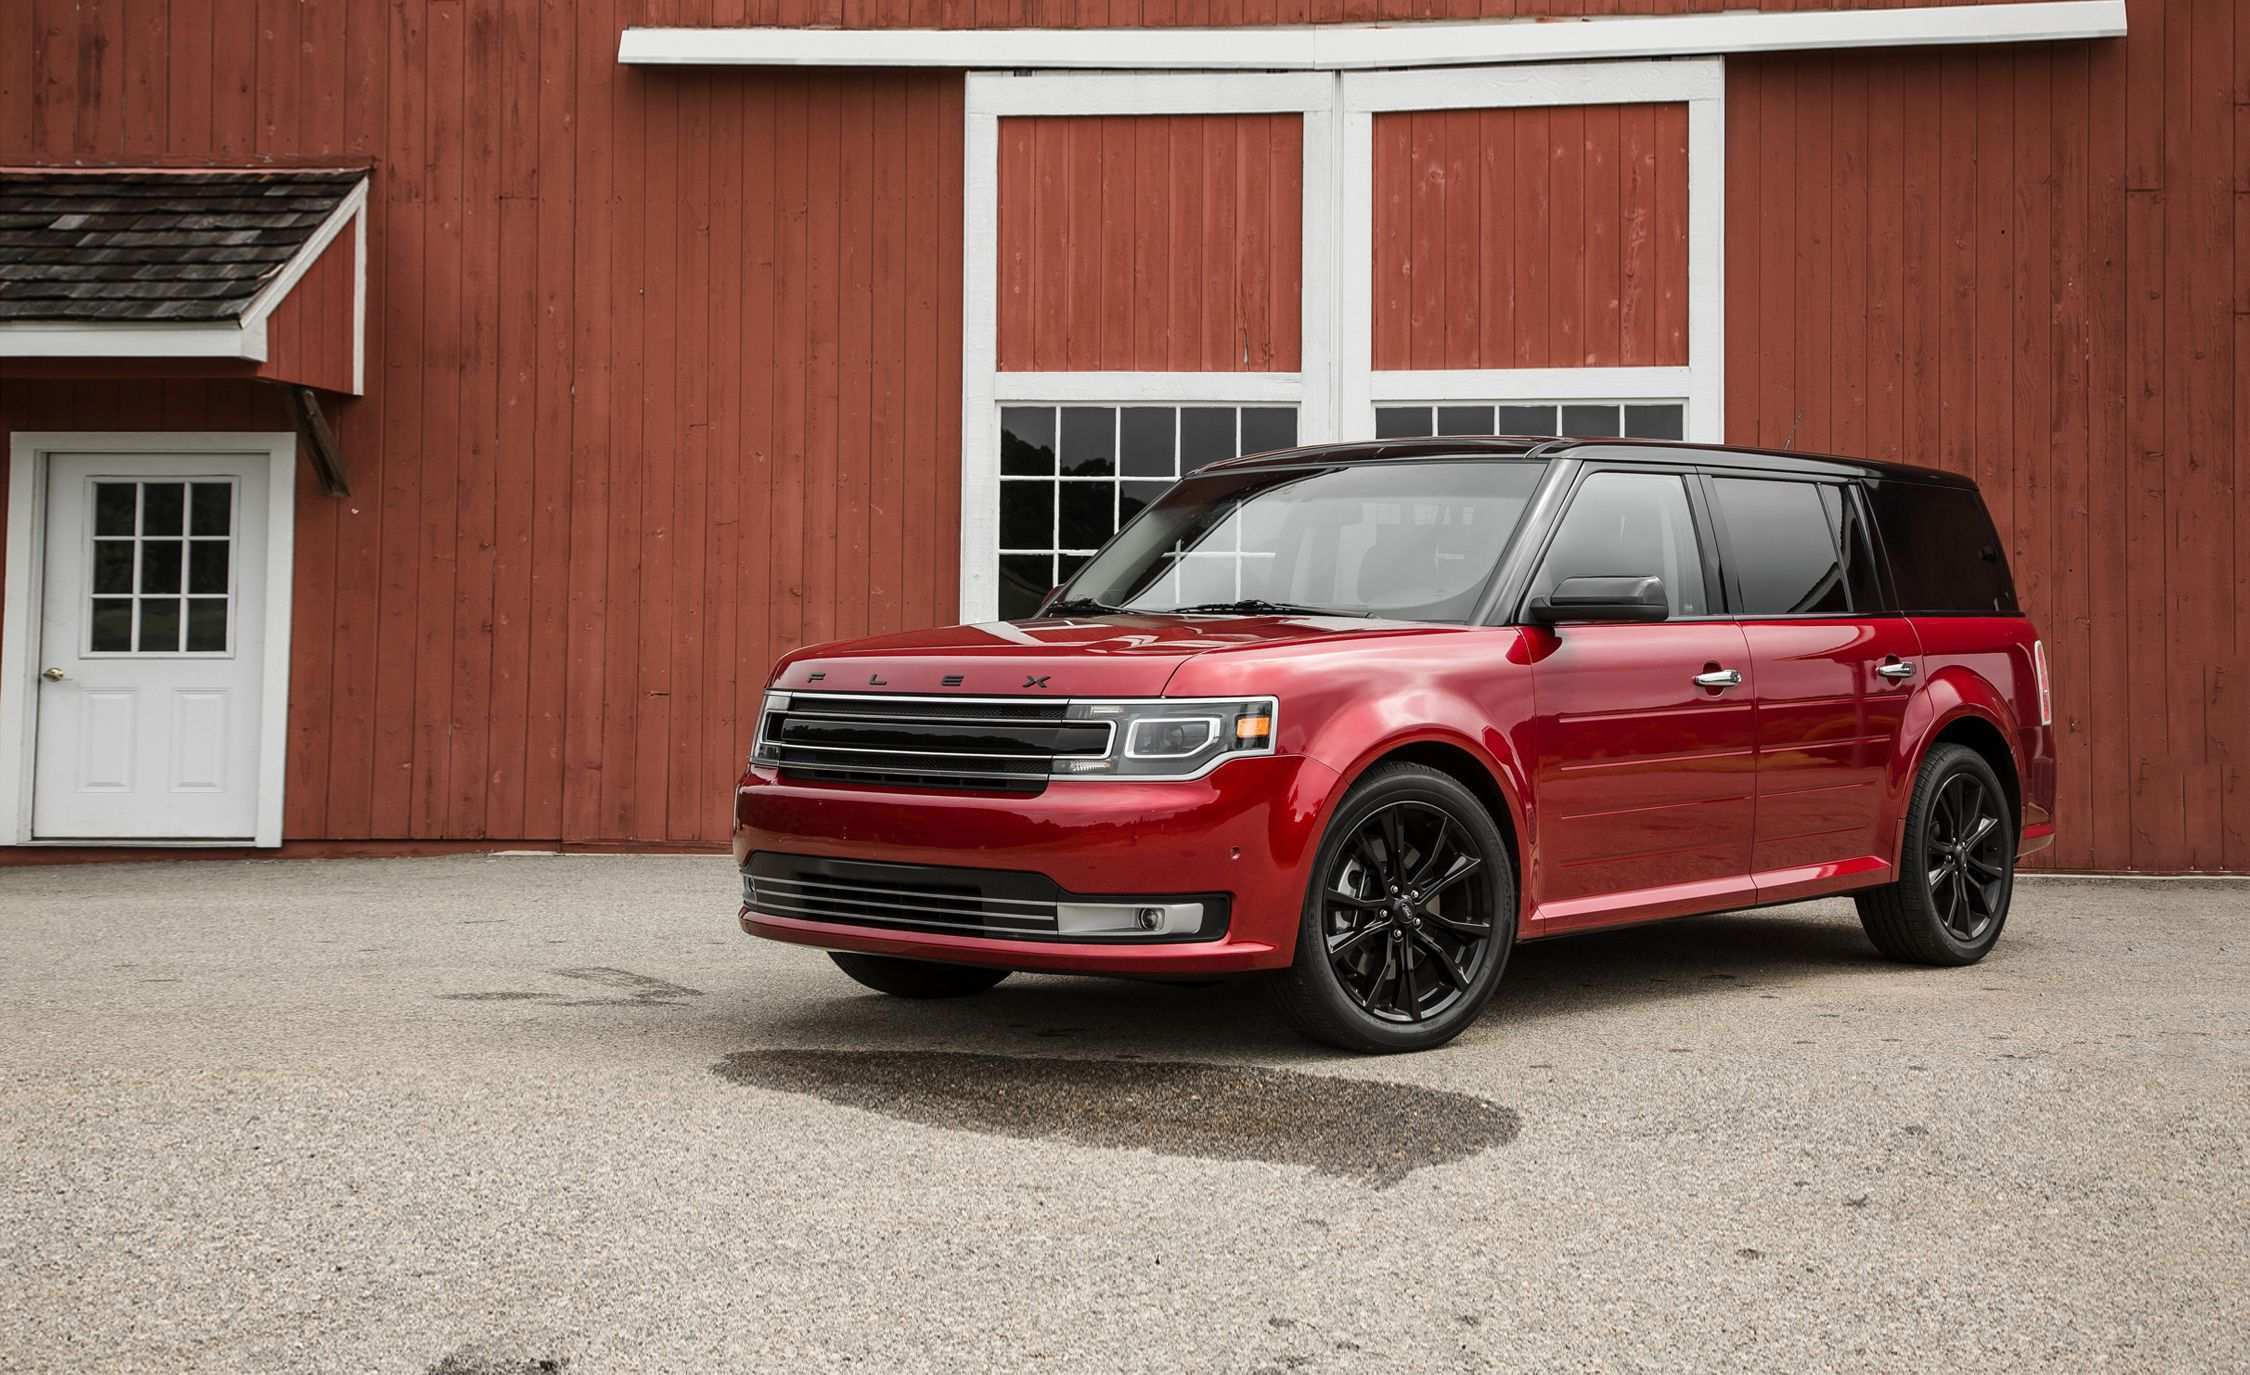 38 All New 2020 Ford Flex S Price Design And Review